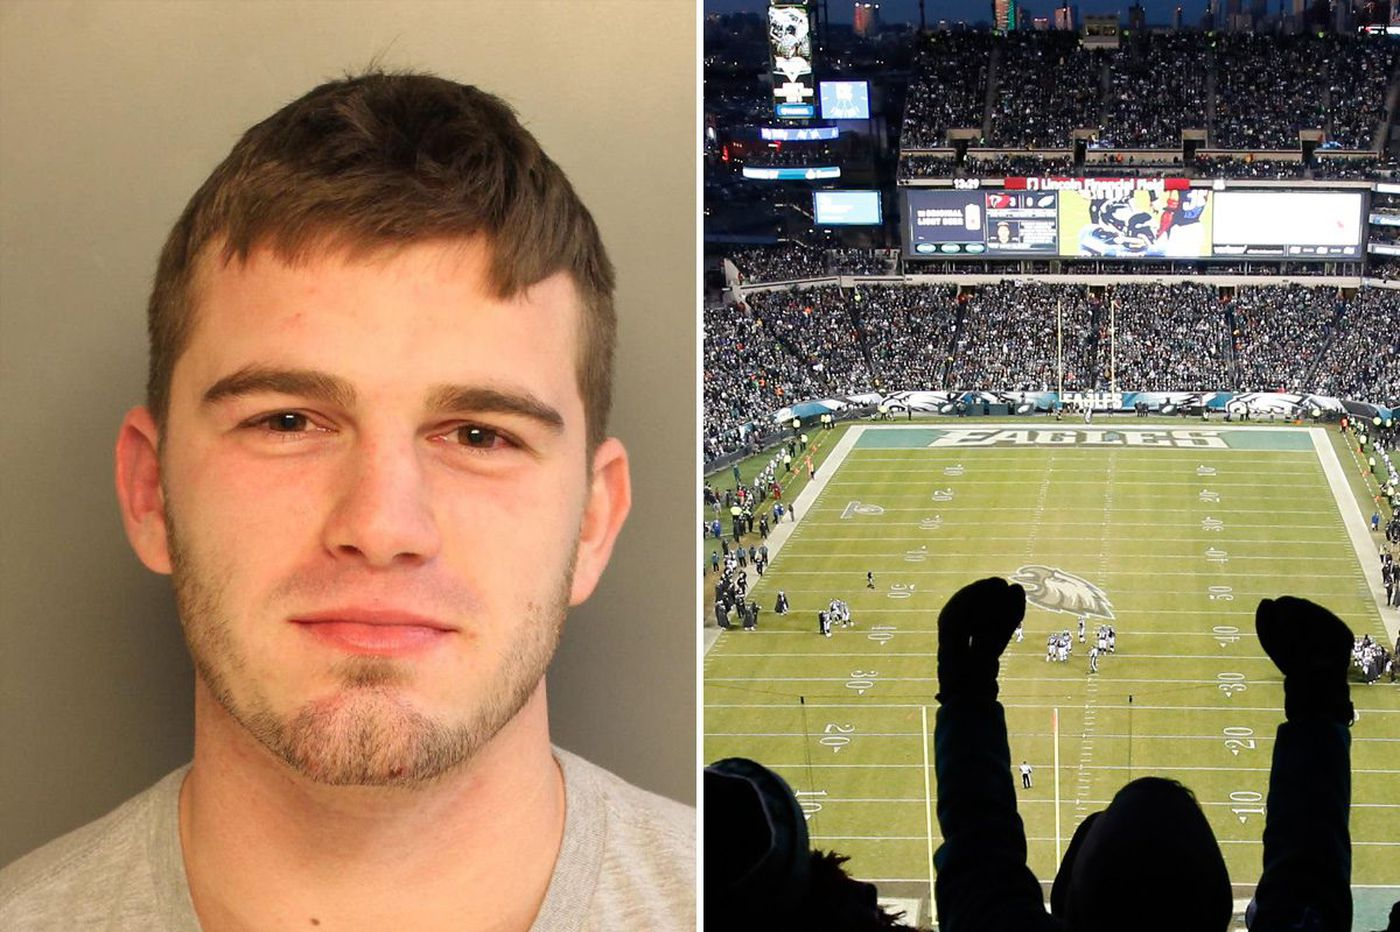 Cops: Eagles fan arrested after punching horse at the Linc